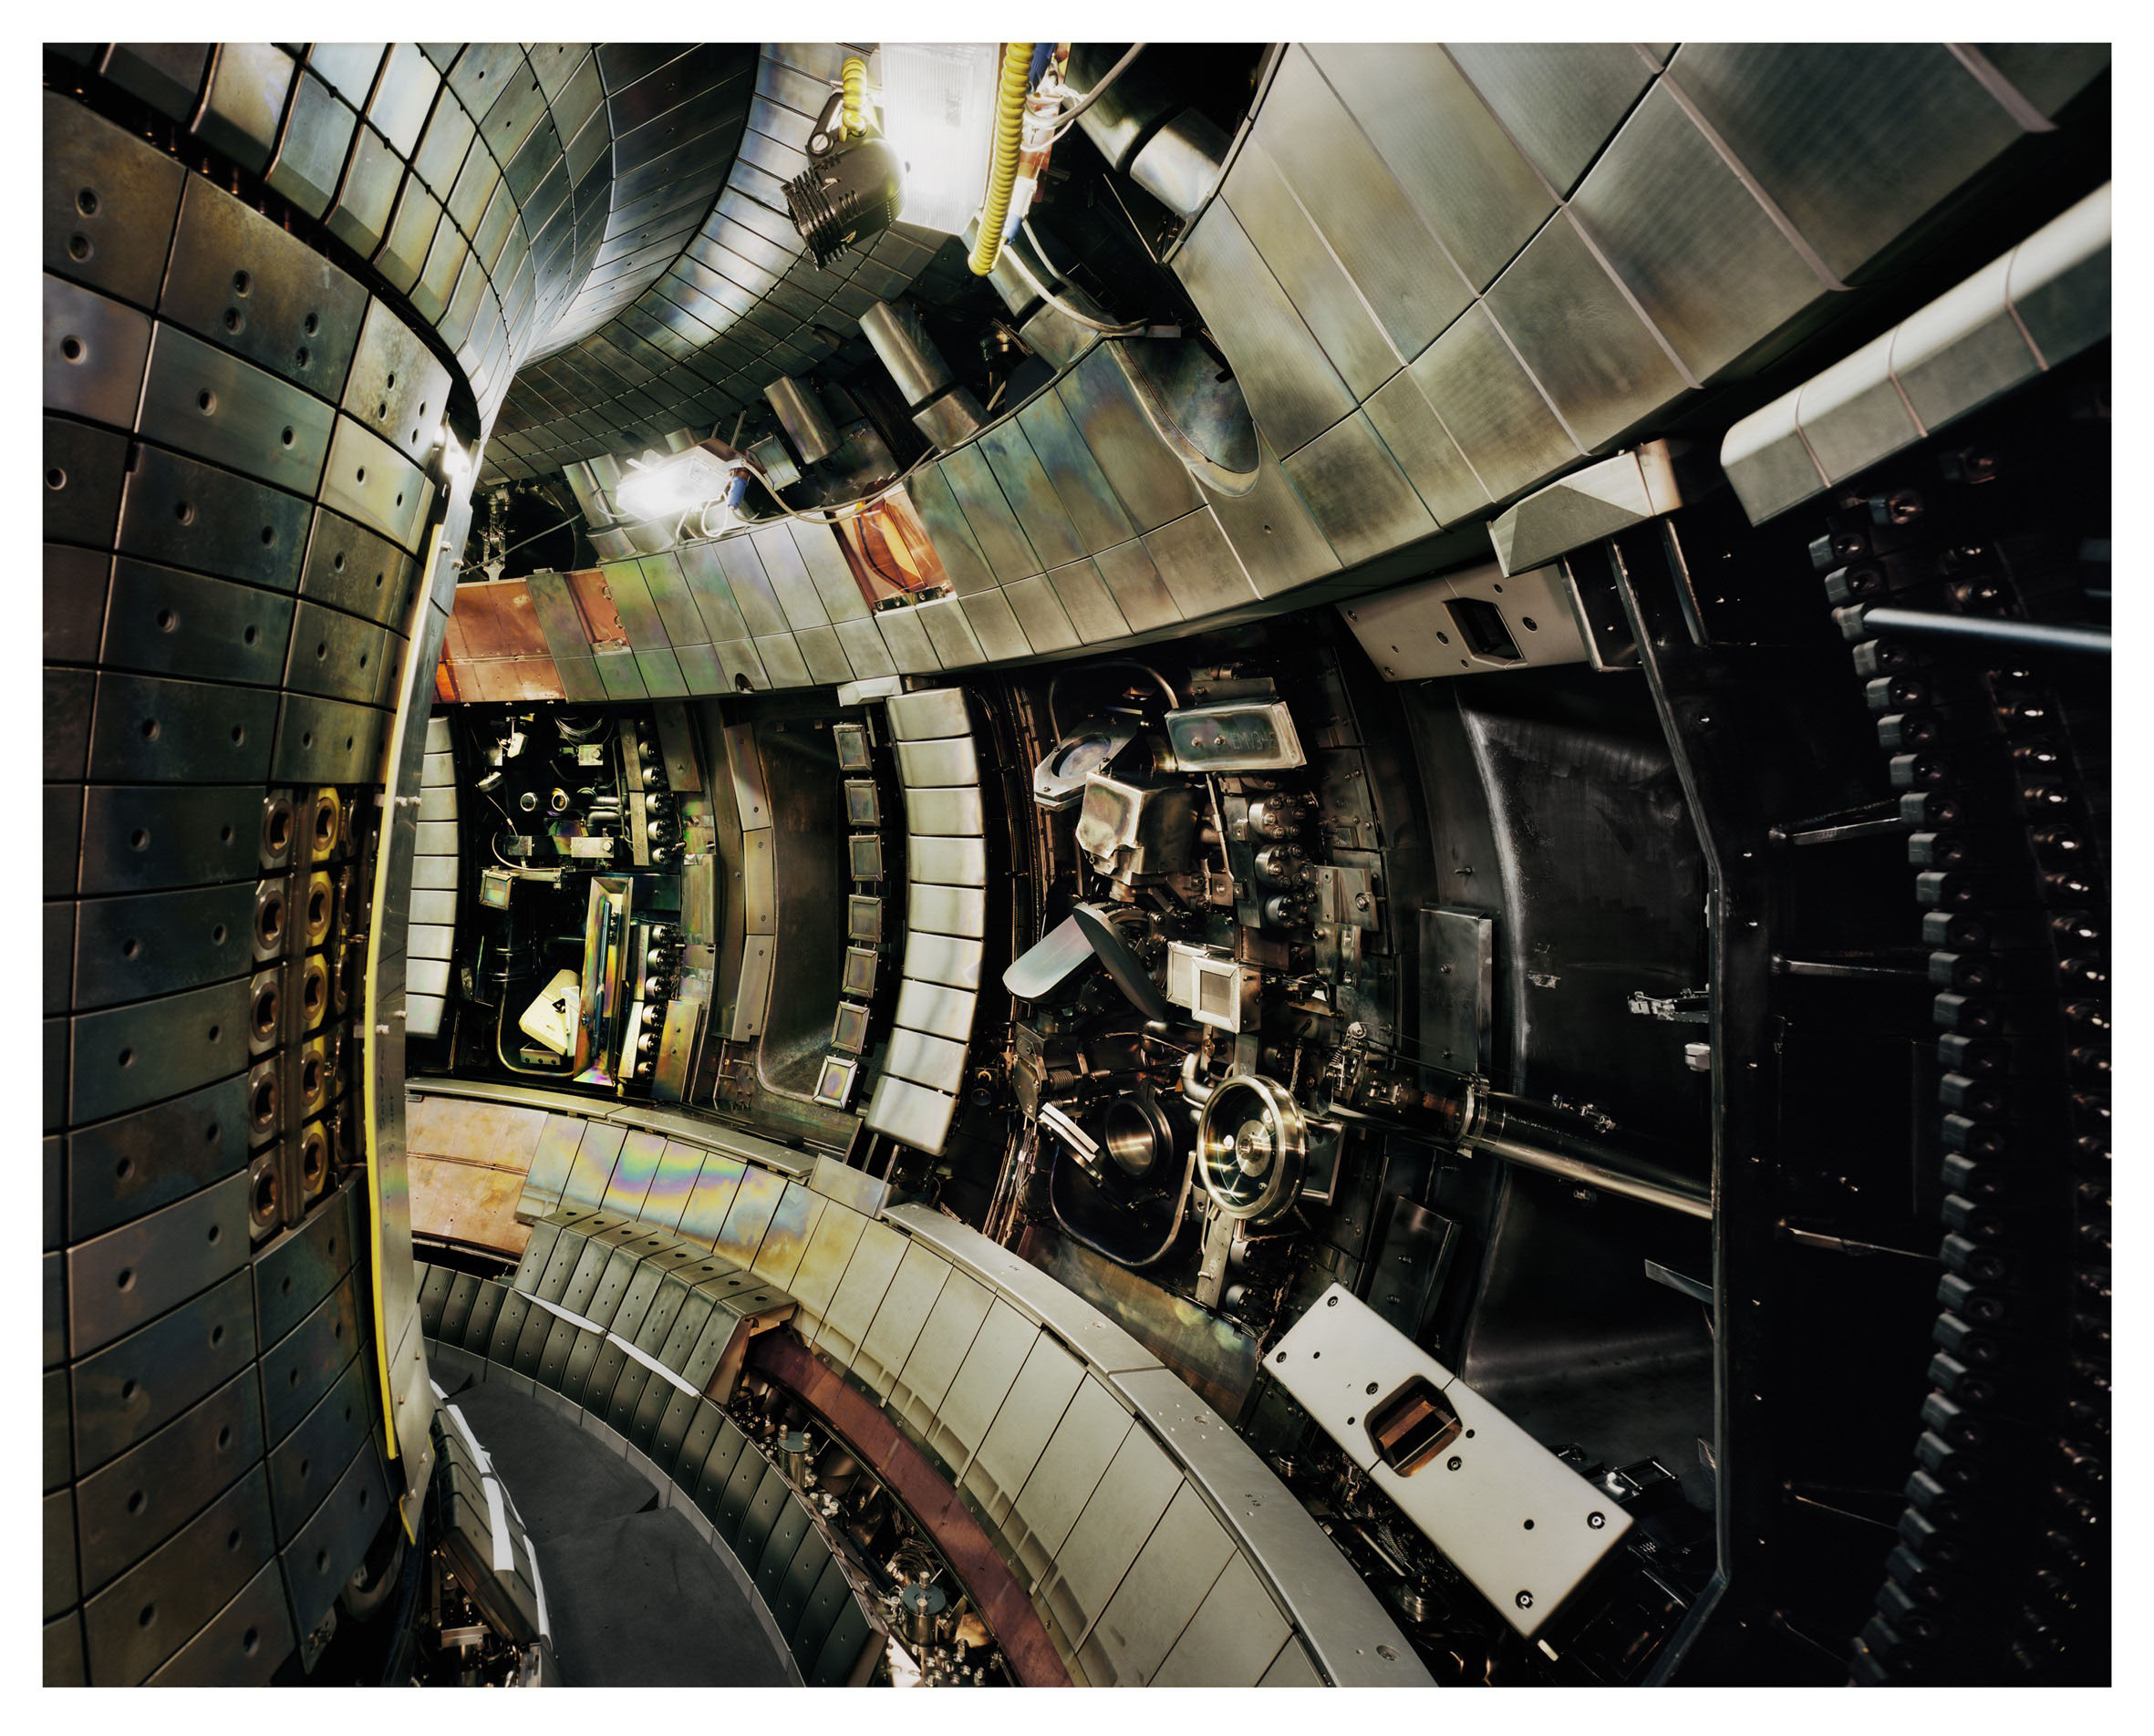 12. Thomas Struth In#5DCE1A